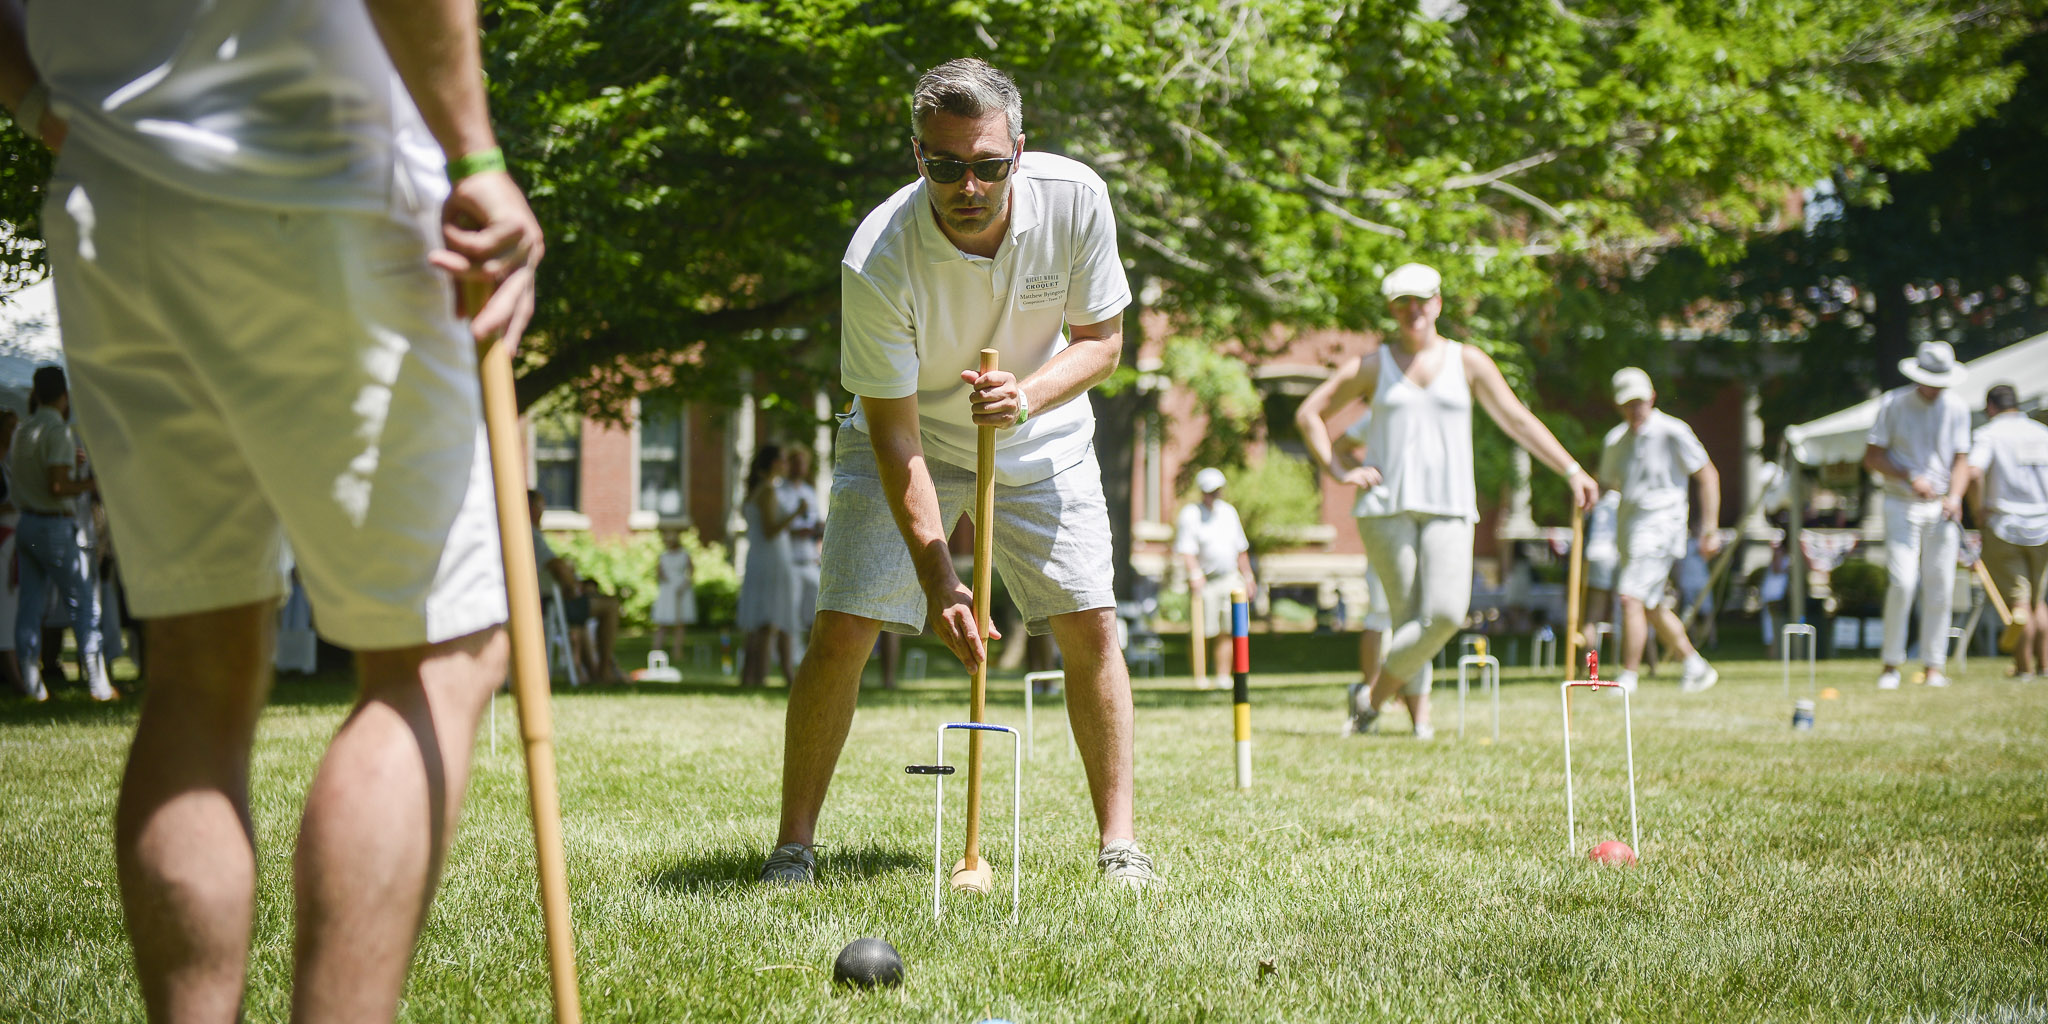 photograph of people playing croquet